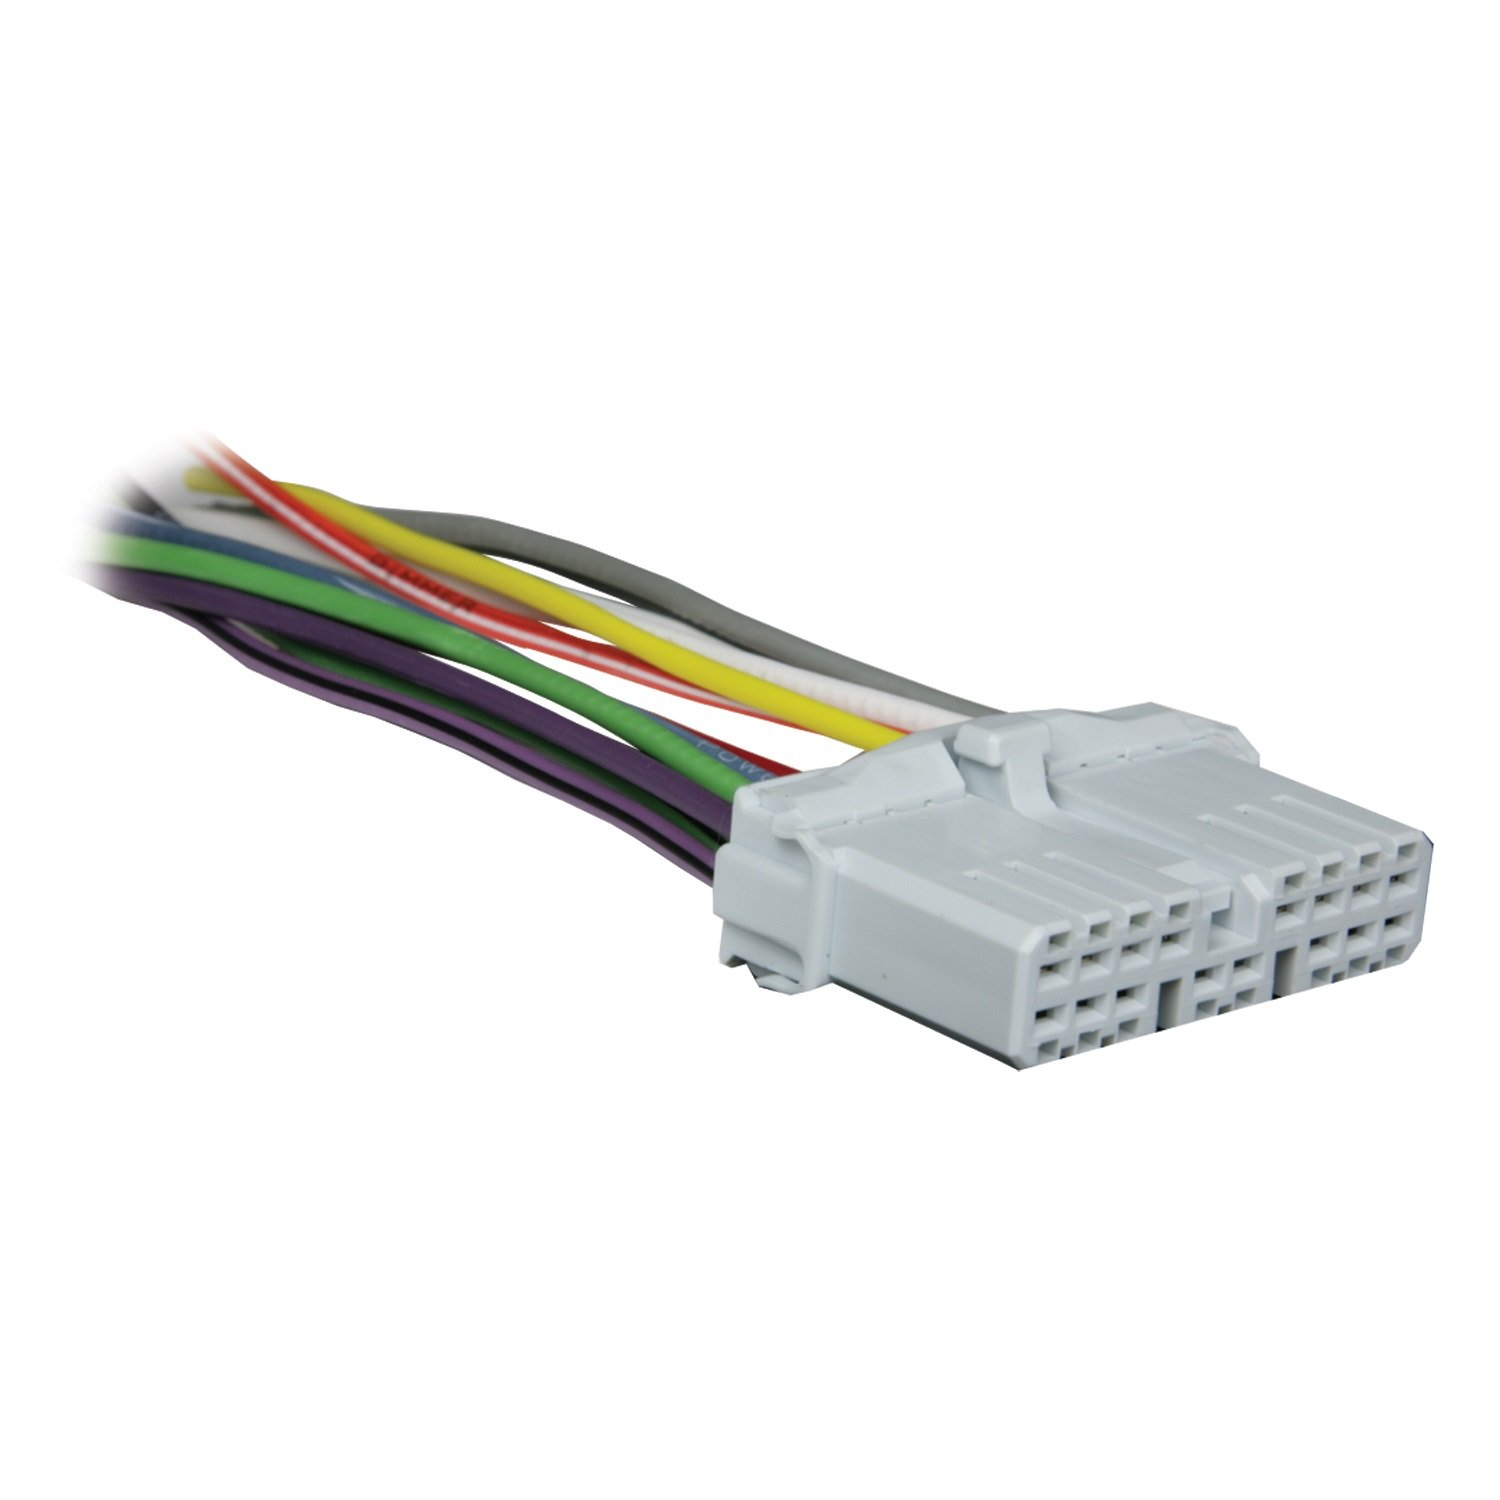 613QdgpH1YL._SL1500_ amazon com metra 71 1720 reverse wiring harness for 1986 1998 Wire Harness Assembly at virtualis.co